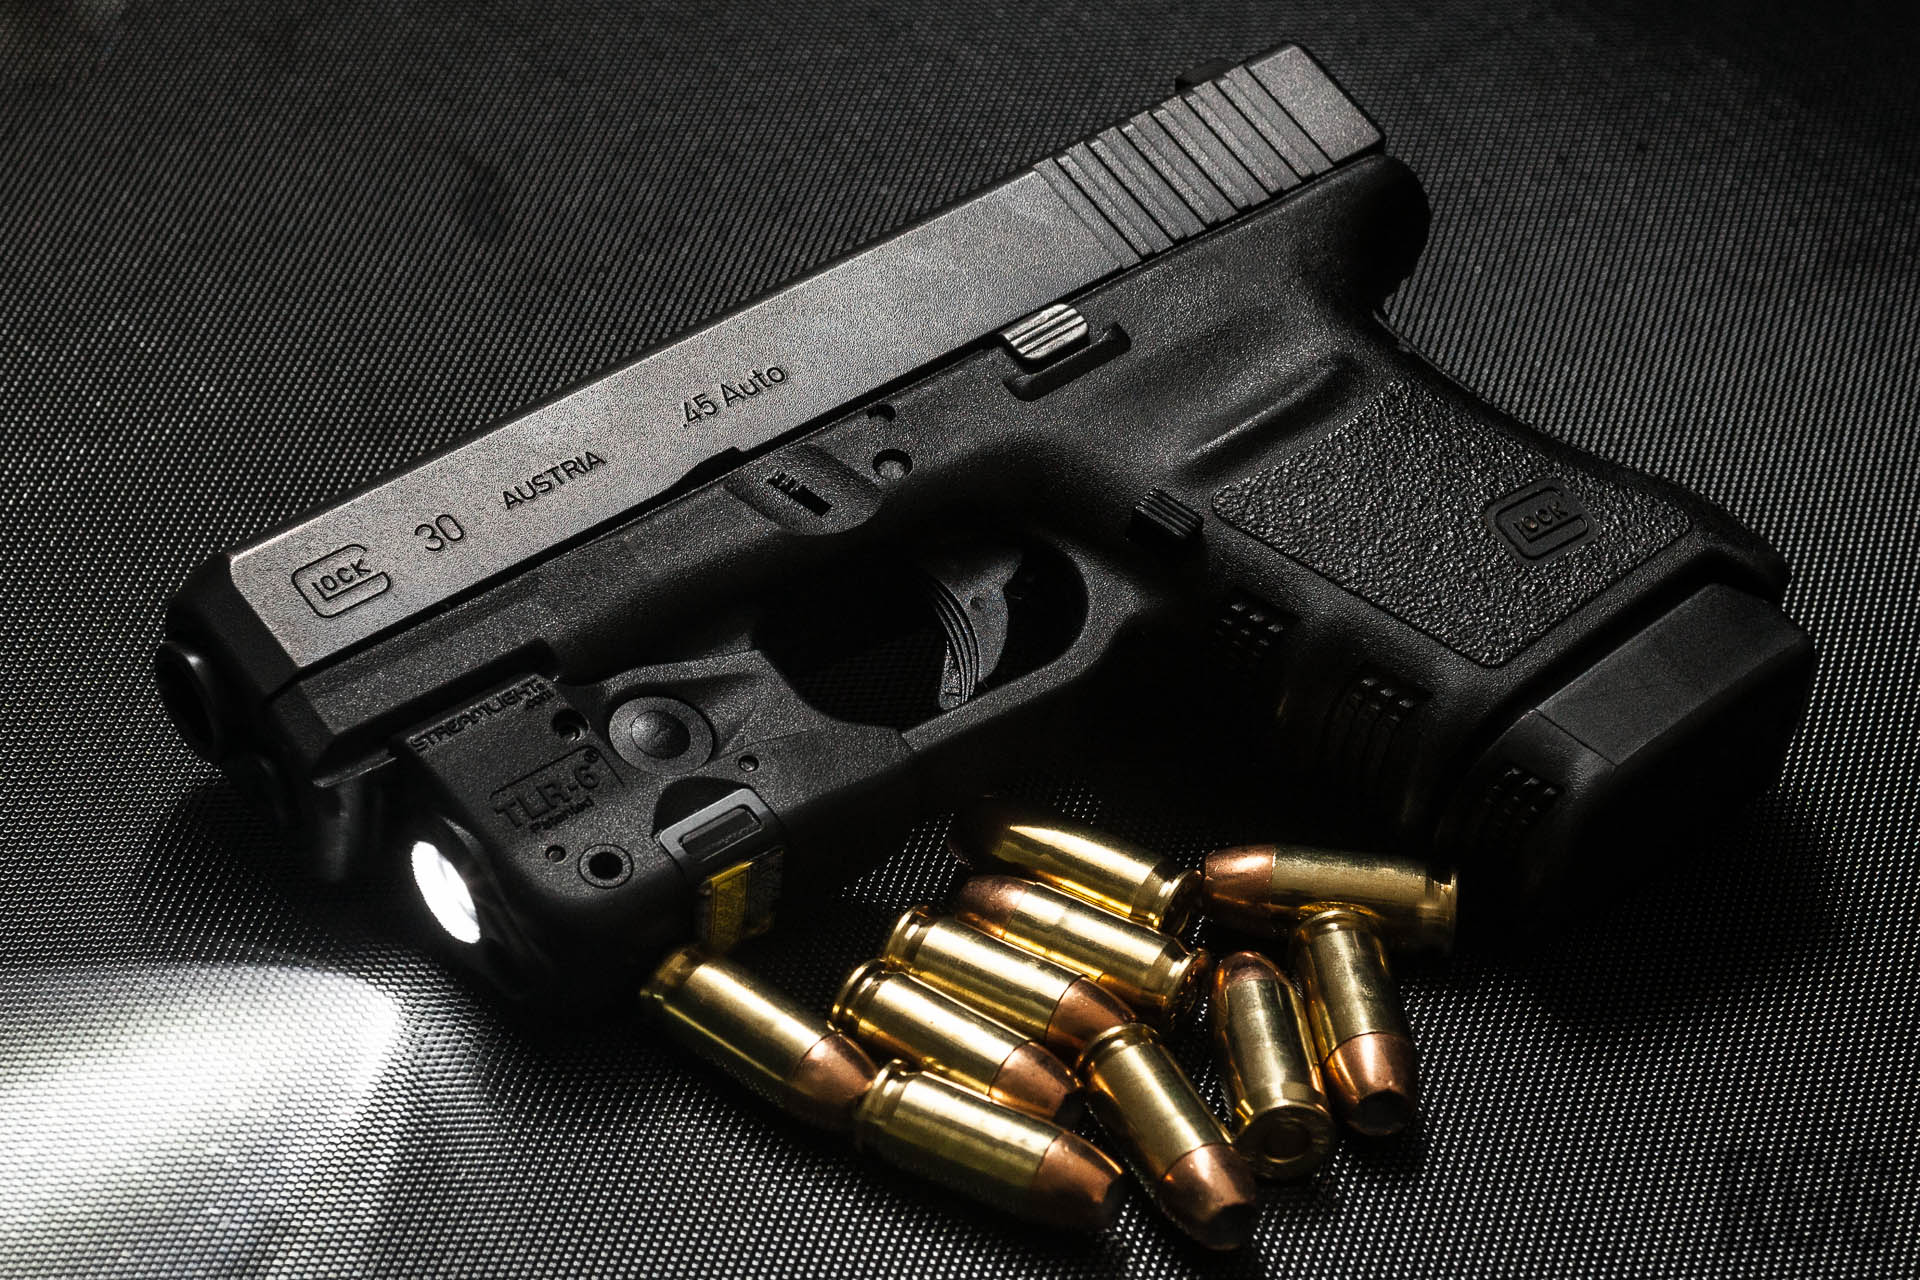 A GLOCK 30 45 ACP pistol with a Streamlight TLR-6 weapon mounted light.